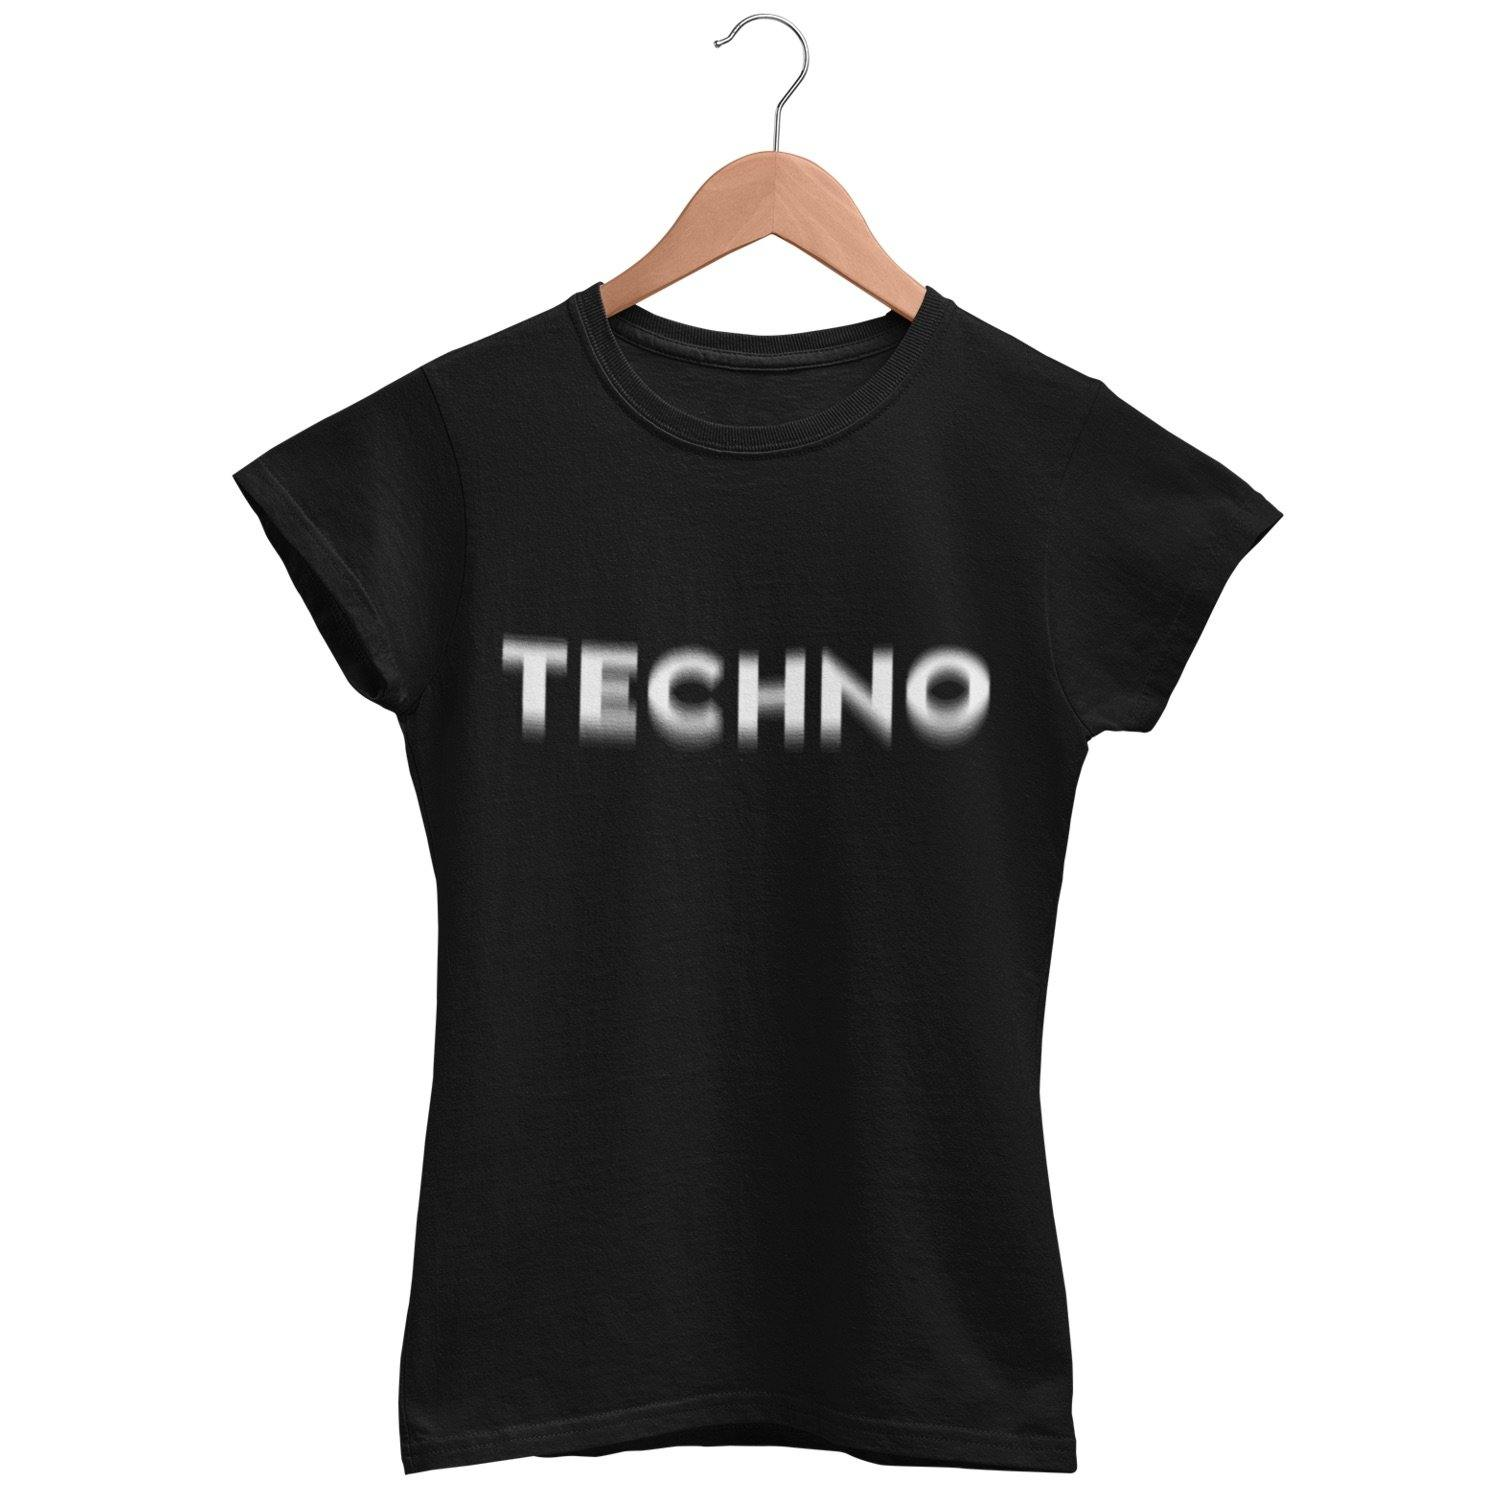 Camiseta de corte clásico Techno Visual Effect